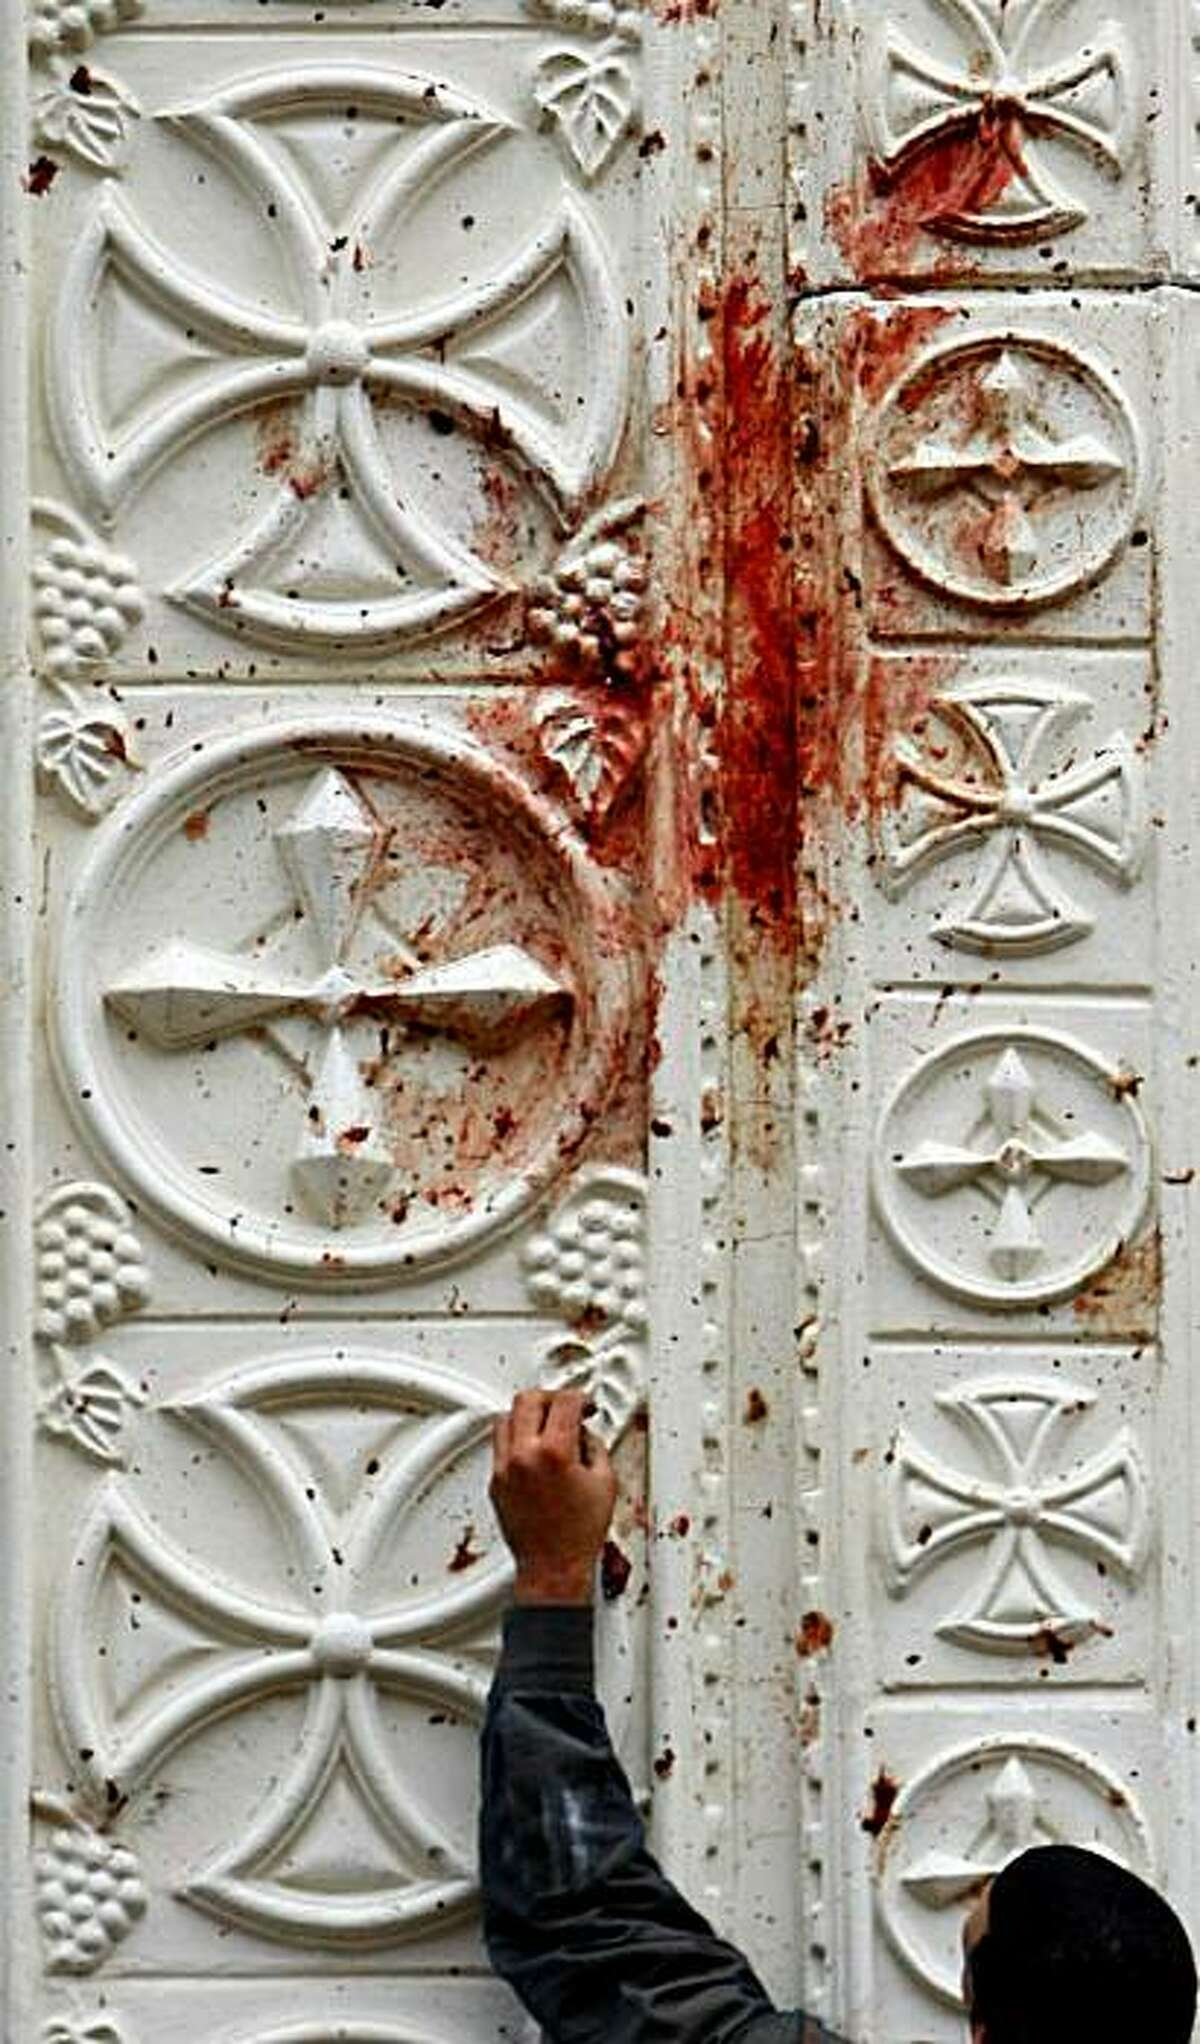 An Egyptian man cleans blood stains from the main gate of the Al-Qiddissine (The Saints) church following an overnight car bomb attack that targeted the church in the Egyptian port city of Alexandria on January 1, 2011 and killed at least 21, hitting Egypt's Christian community, the biggest in the Middle East.